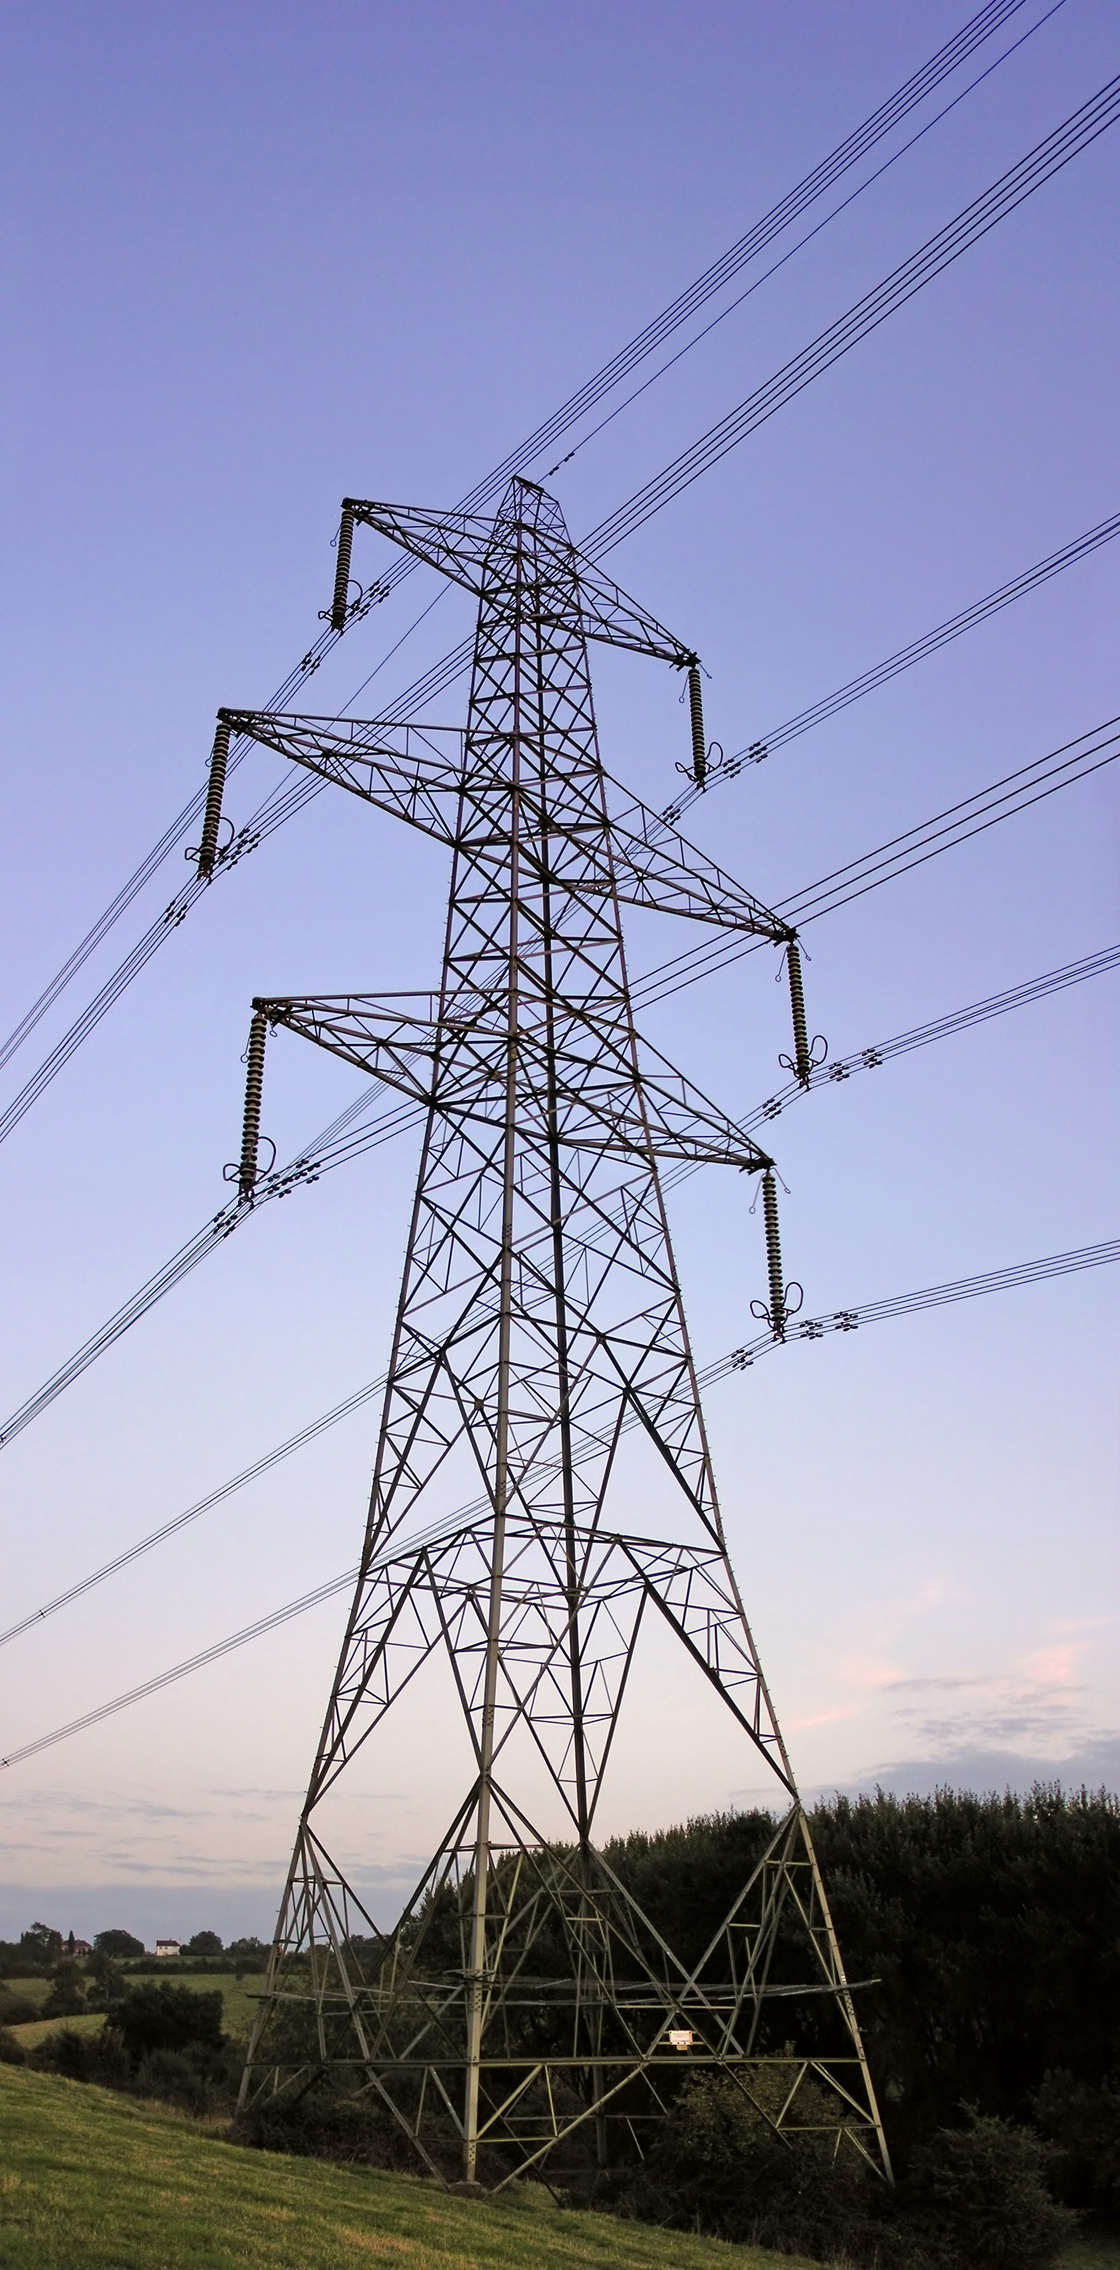 Drawn power line electrical pole Tower  Wikipedia Transmission